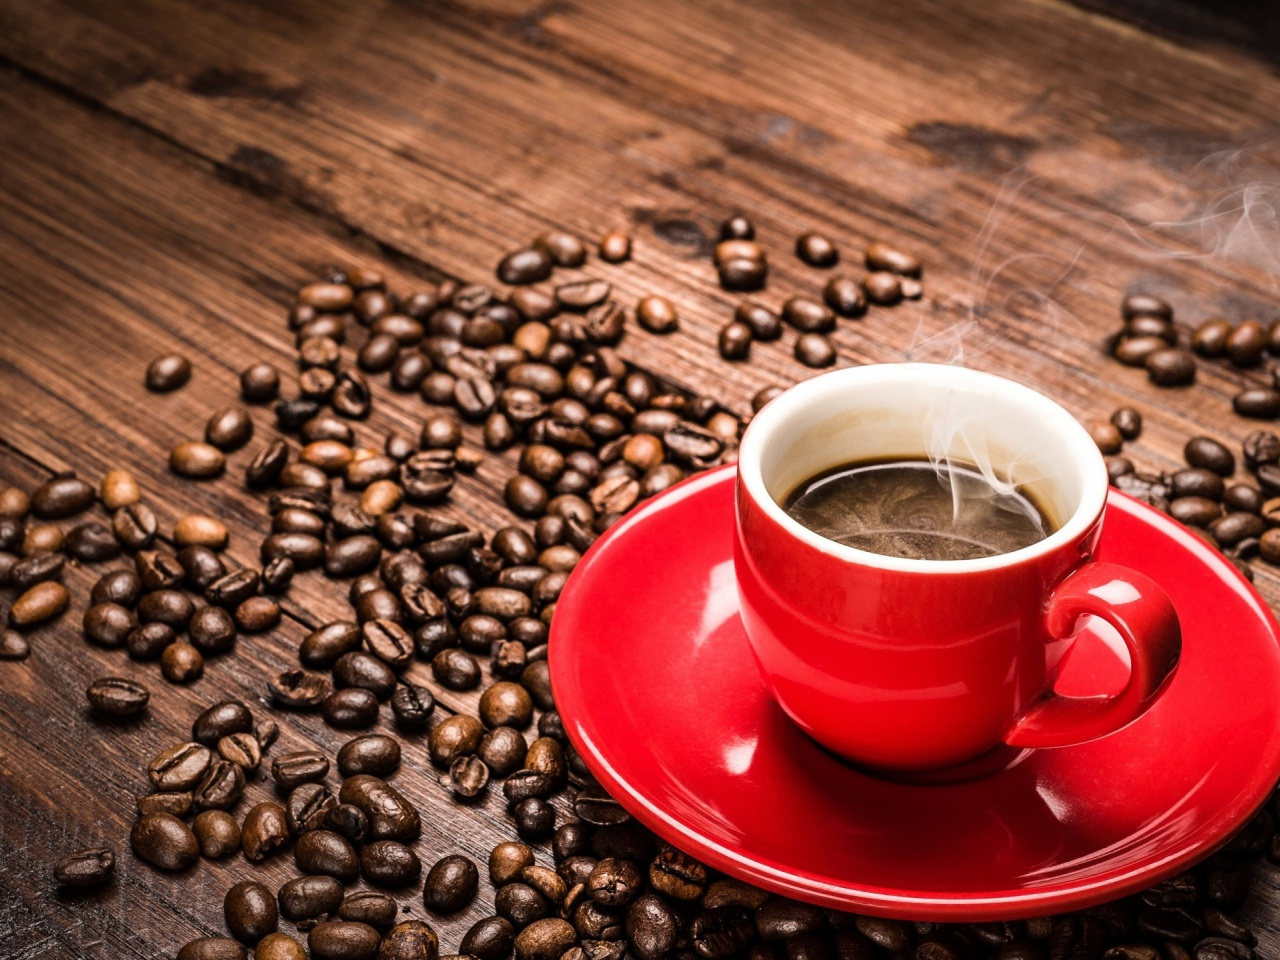 Coffee cup for mac - 1280x960 Red Coffee Cup And Coffee Beans Desktop Pc And Mac Wallpaper